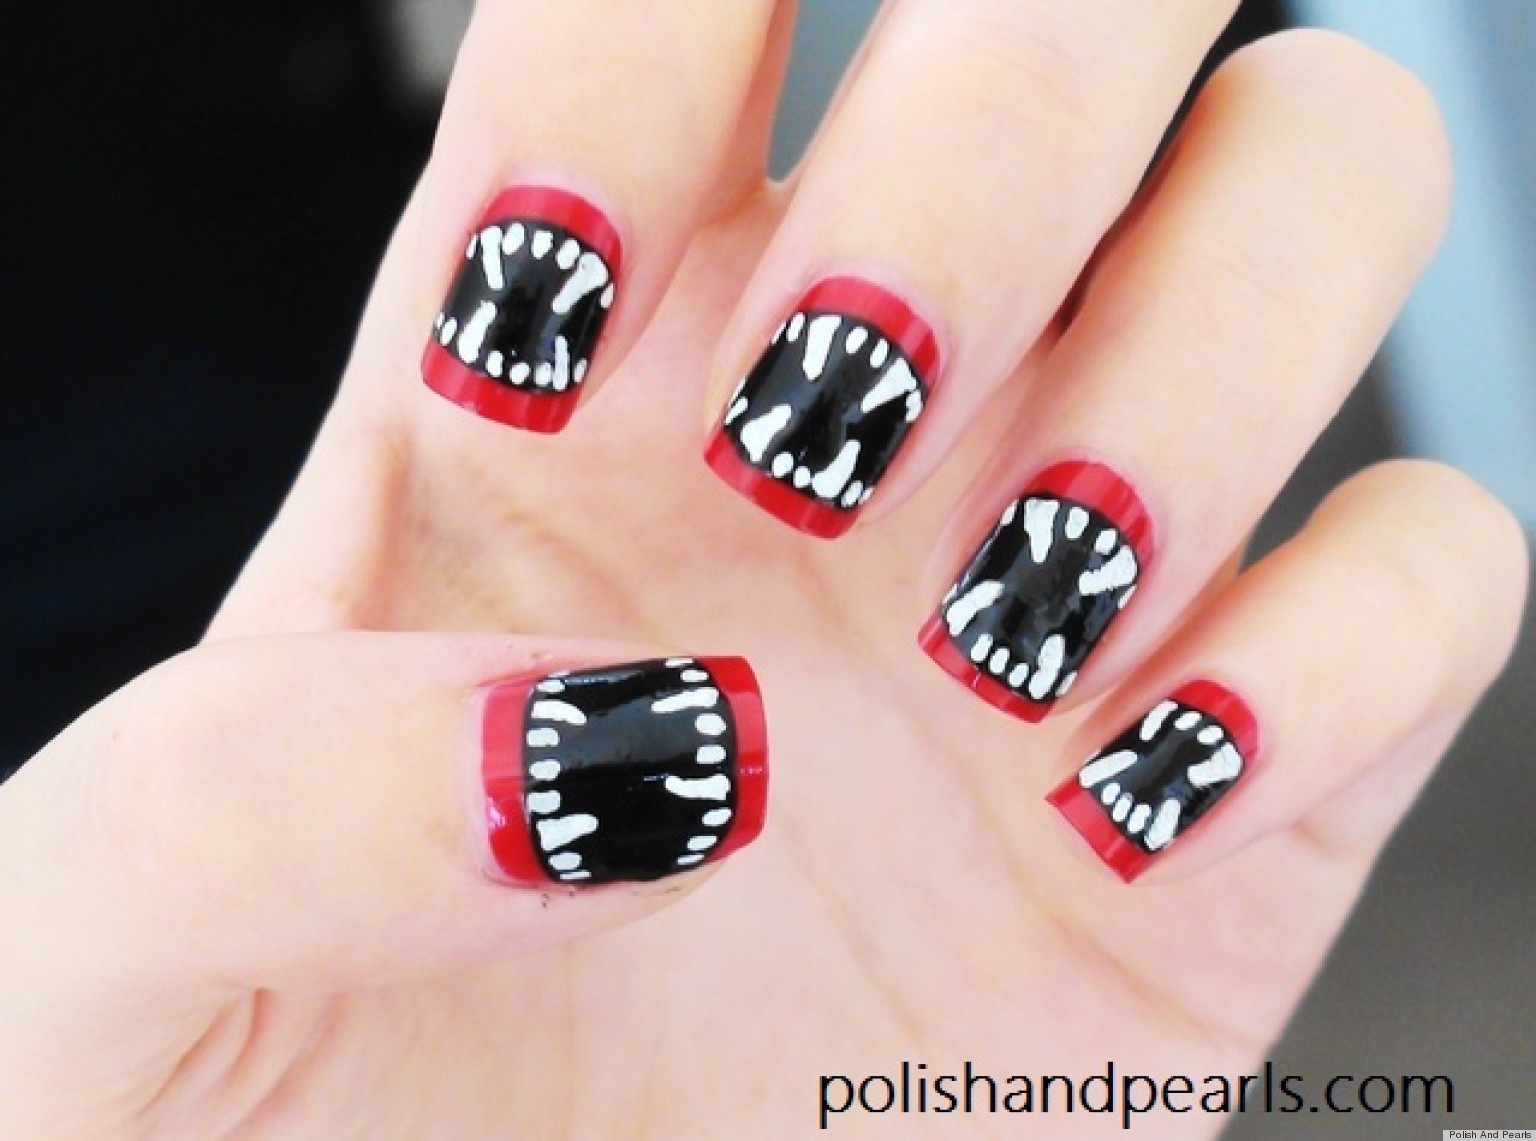 15 halloween nail art designs you can do at home o diy nail art halloween vampire fangs facebook prinsesfo Choice Image